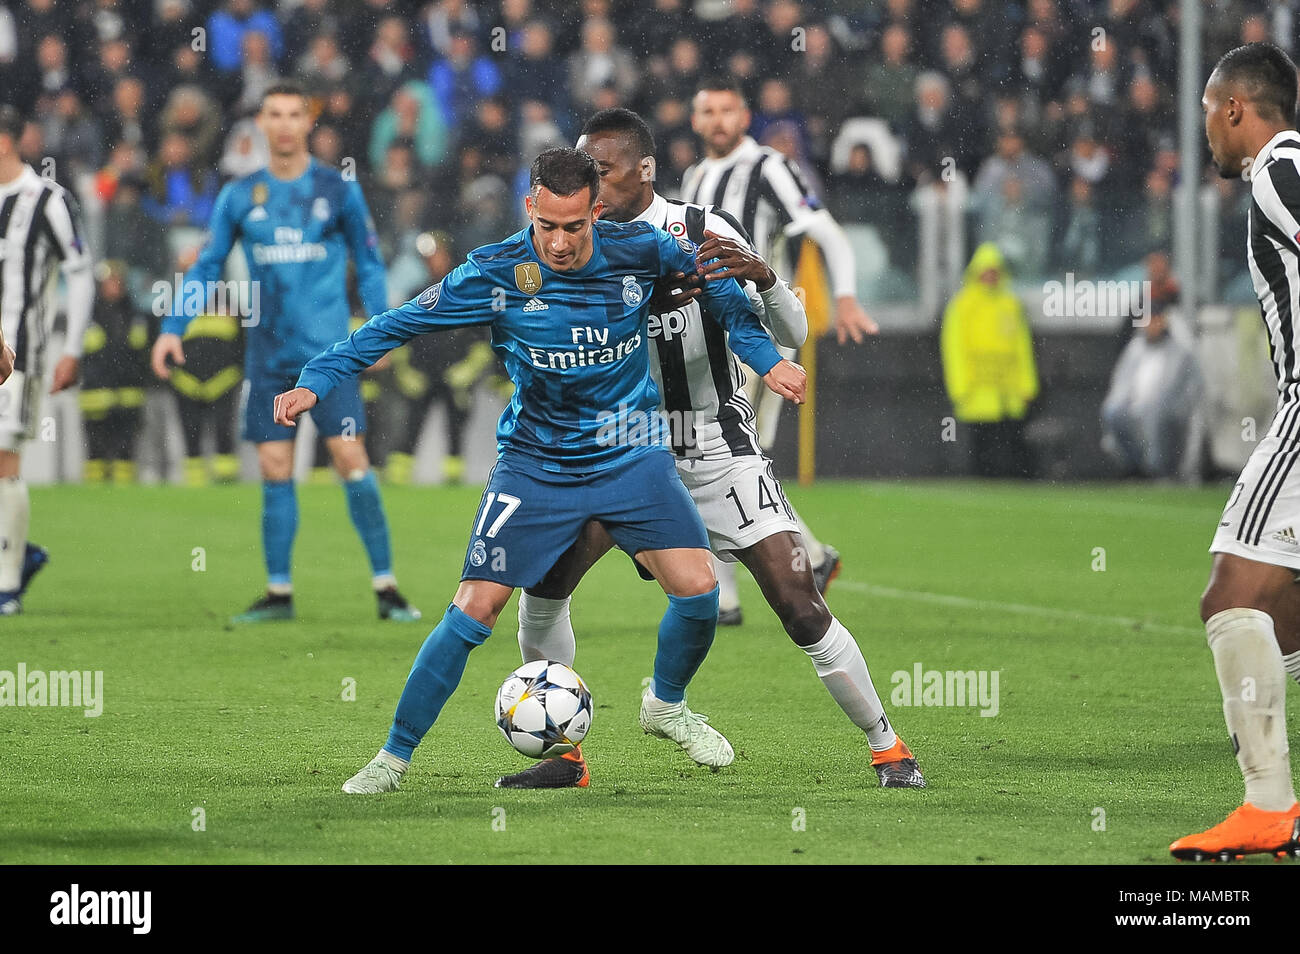 Lucas Vazquez (Real Madrid CF)during the UEFA Champions League football match between Juventus FC and Real Madrid CF at Allianz Stadium on 3th April, 2018 in Turin, Italy. - Stock Image